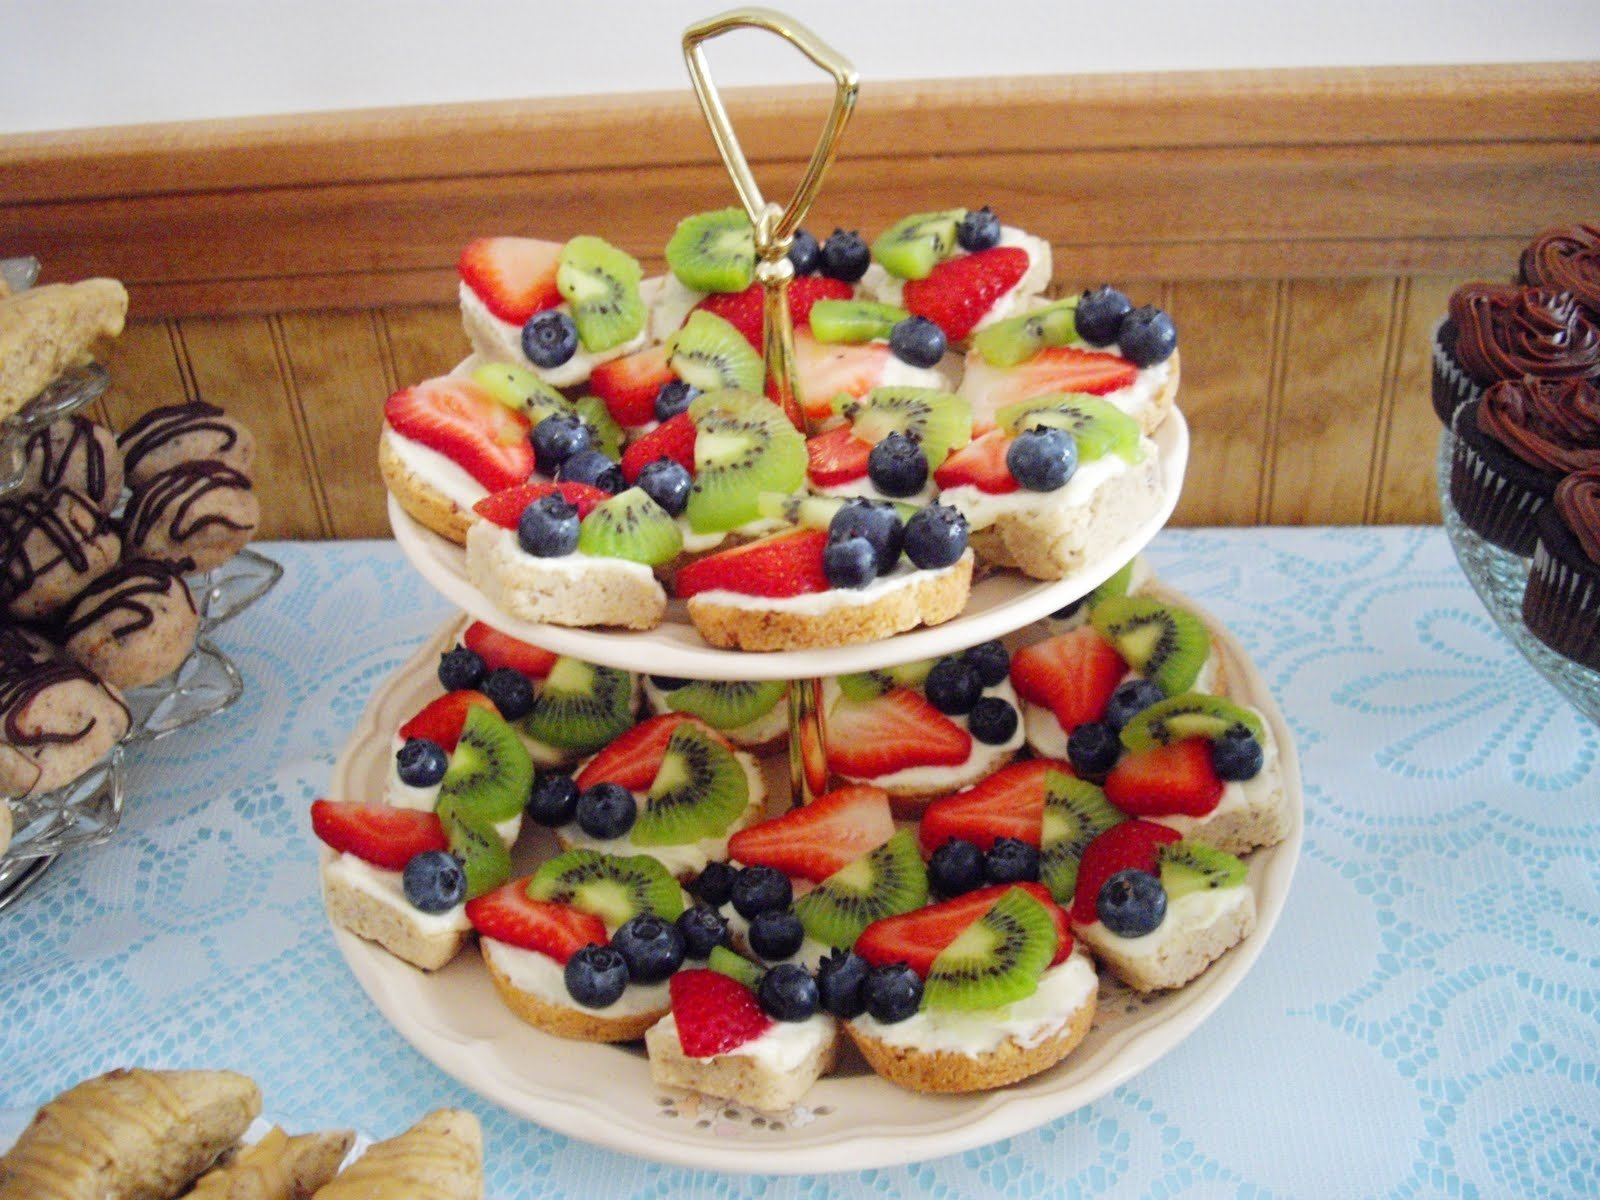 10 Awesome Bridal Shower Menu Ideas Finger Foods mexican wedding fruit pizza and a bridal shower cooking ala mel 2020